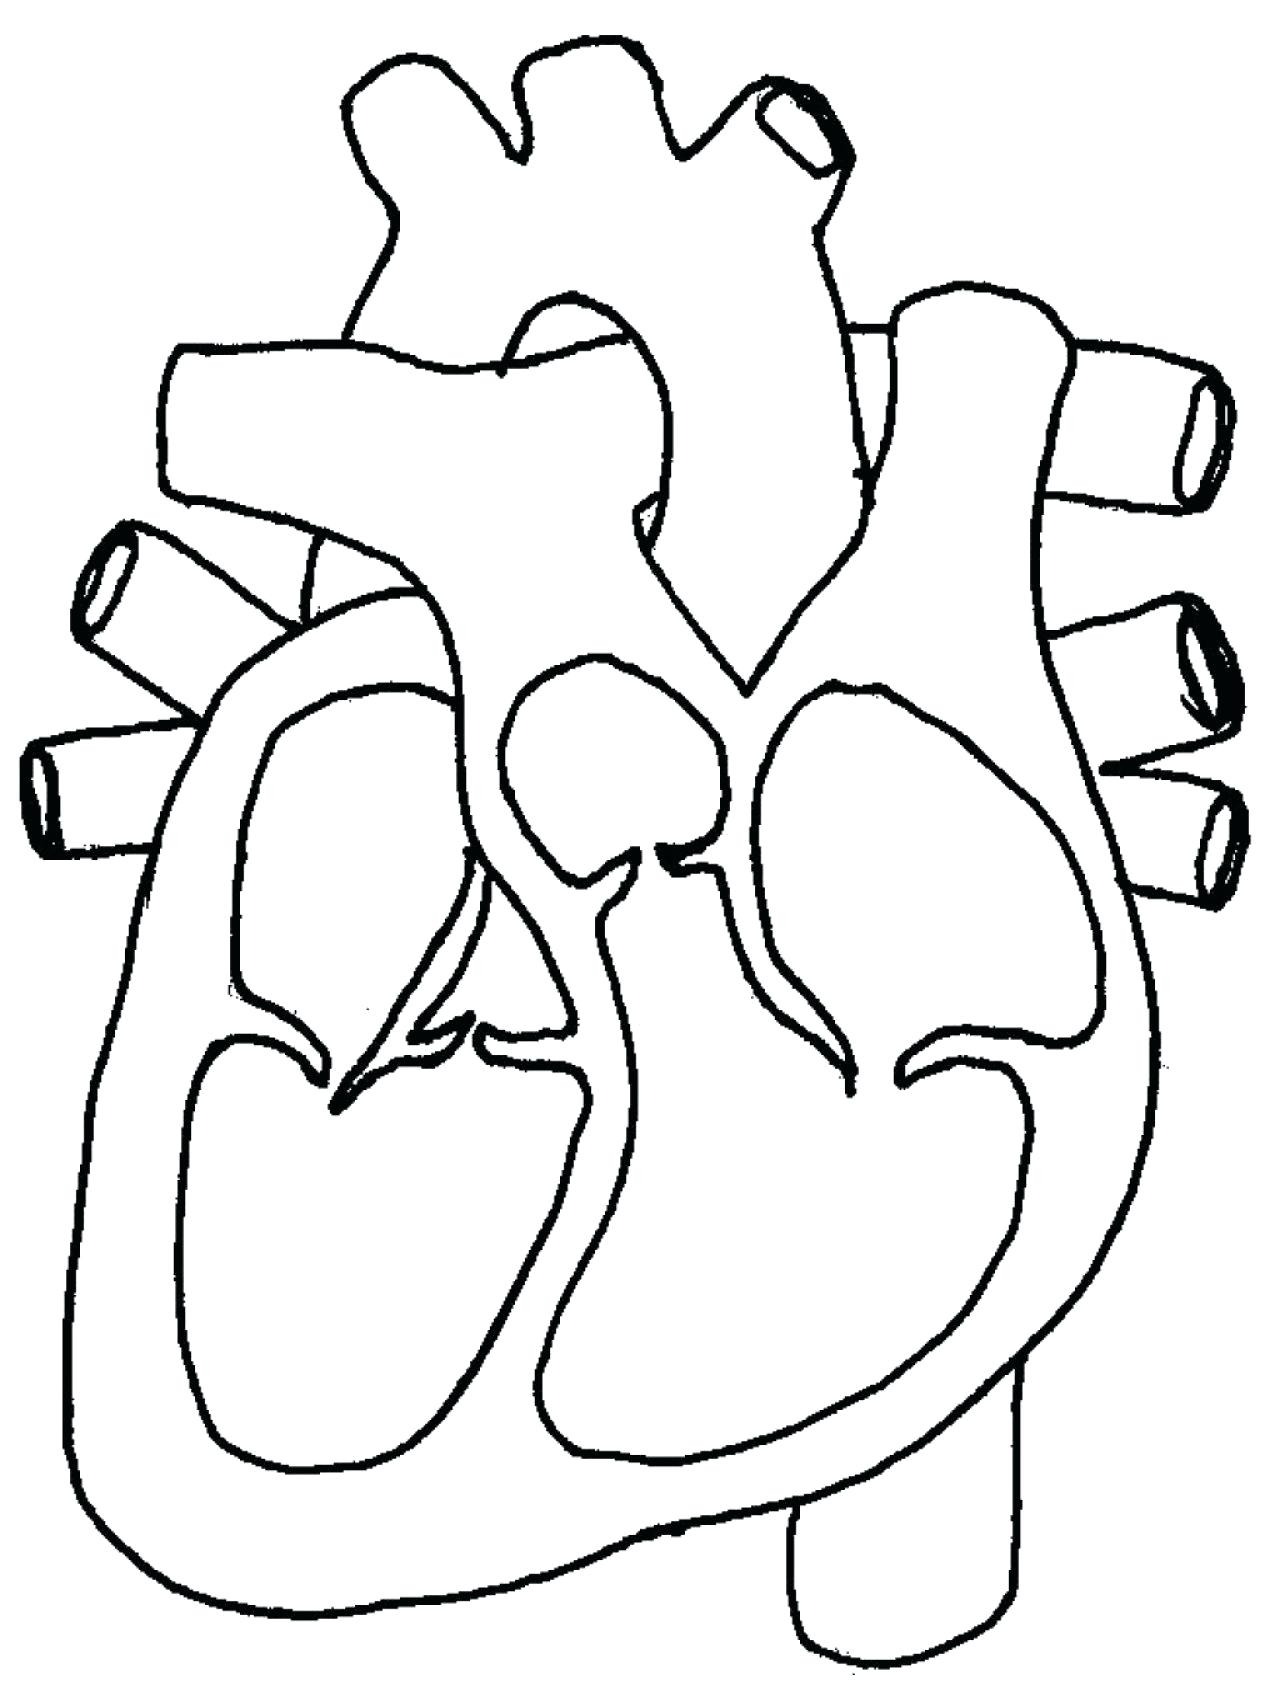 18 Best Images Of Heart Anatomy Blood Flow Worksheet Manual Guide